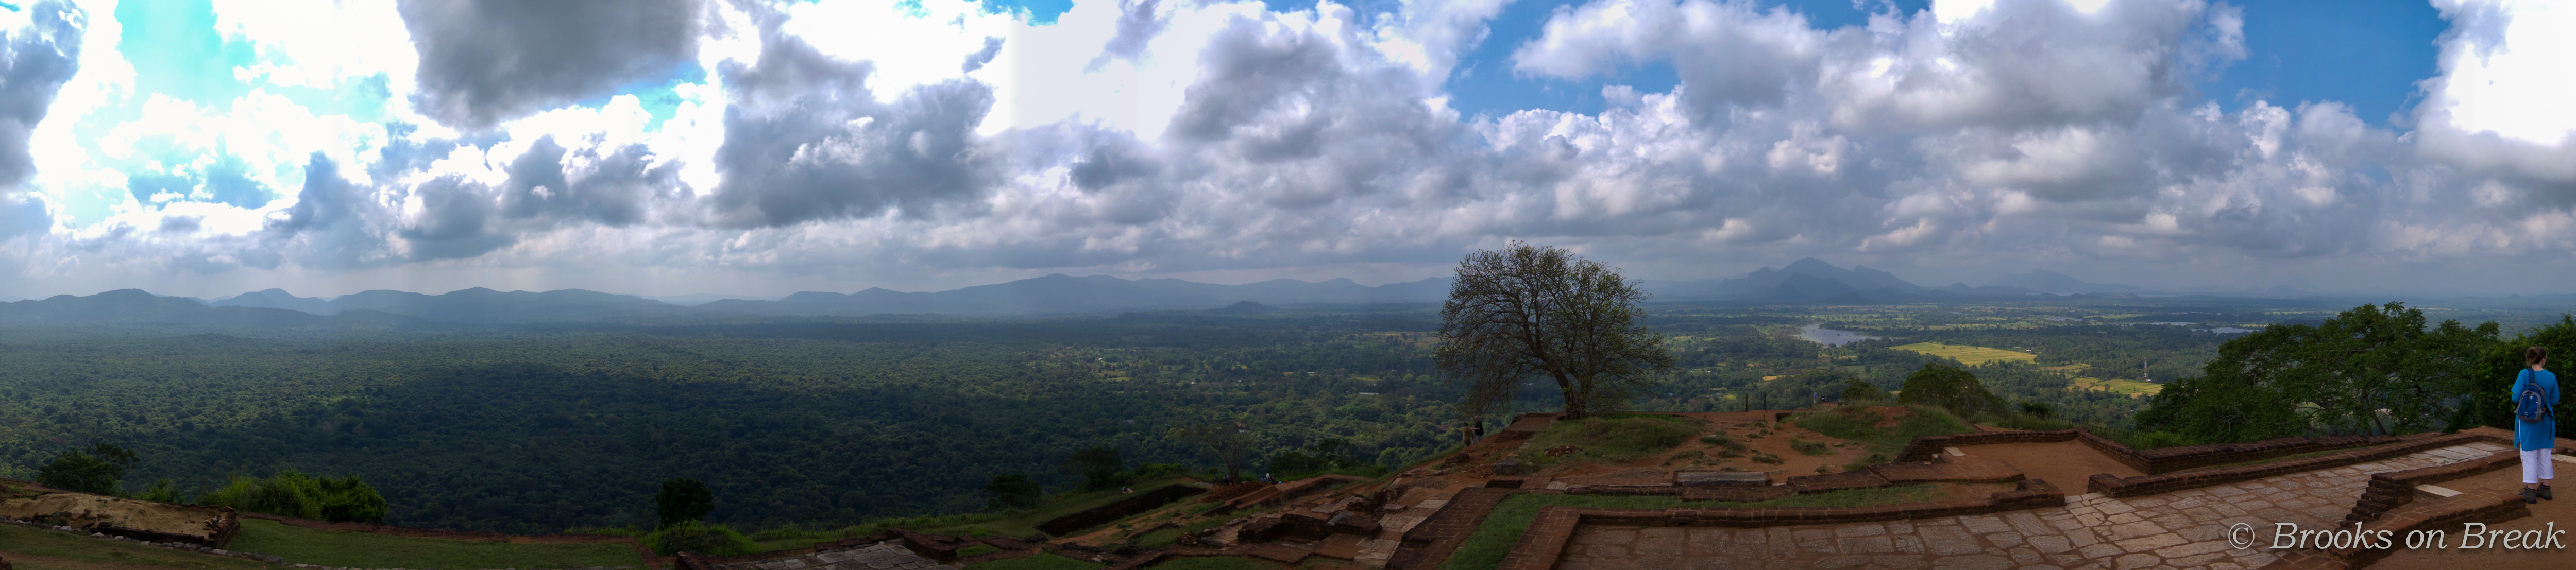 Sigiriya is a towering rock fortress and former palace in north central Sri Lanka that was built over 1500 years ago. The entire complex was built by King […]